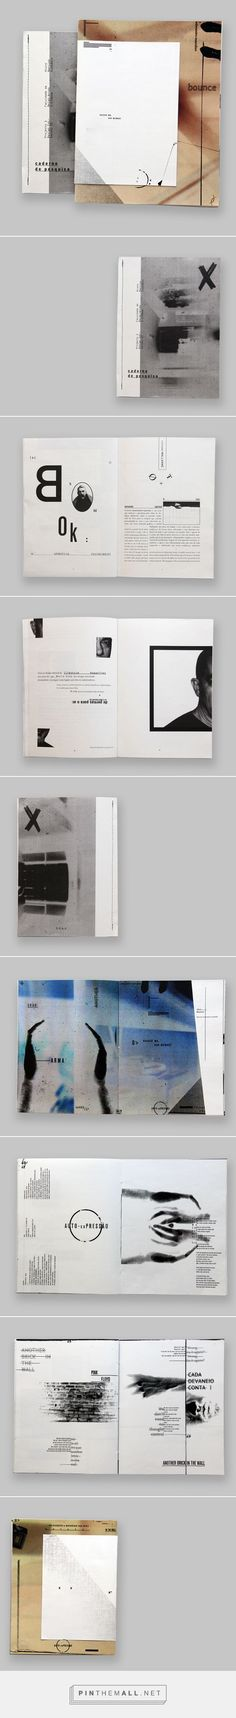 Design book layout #layout #simple